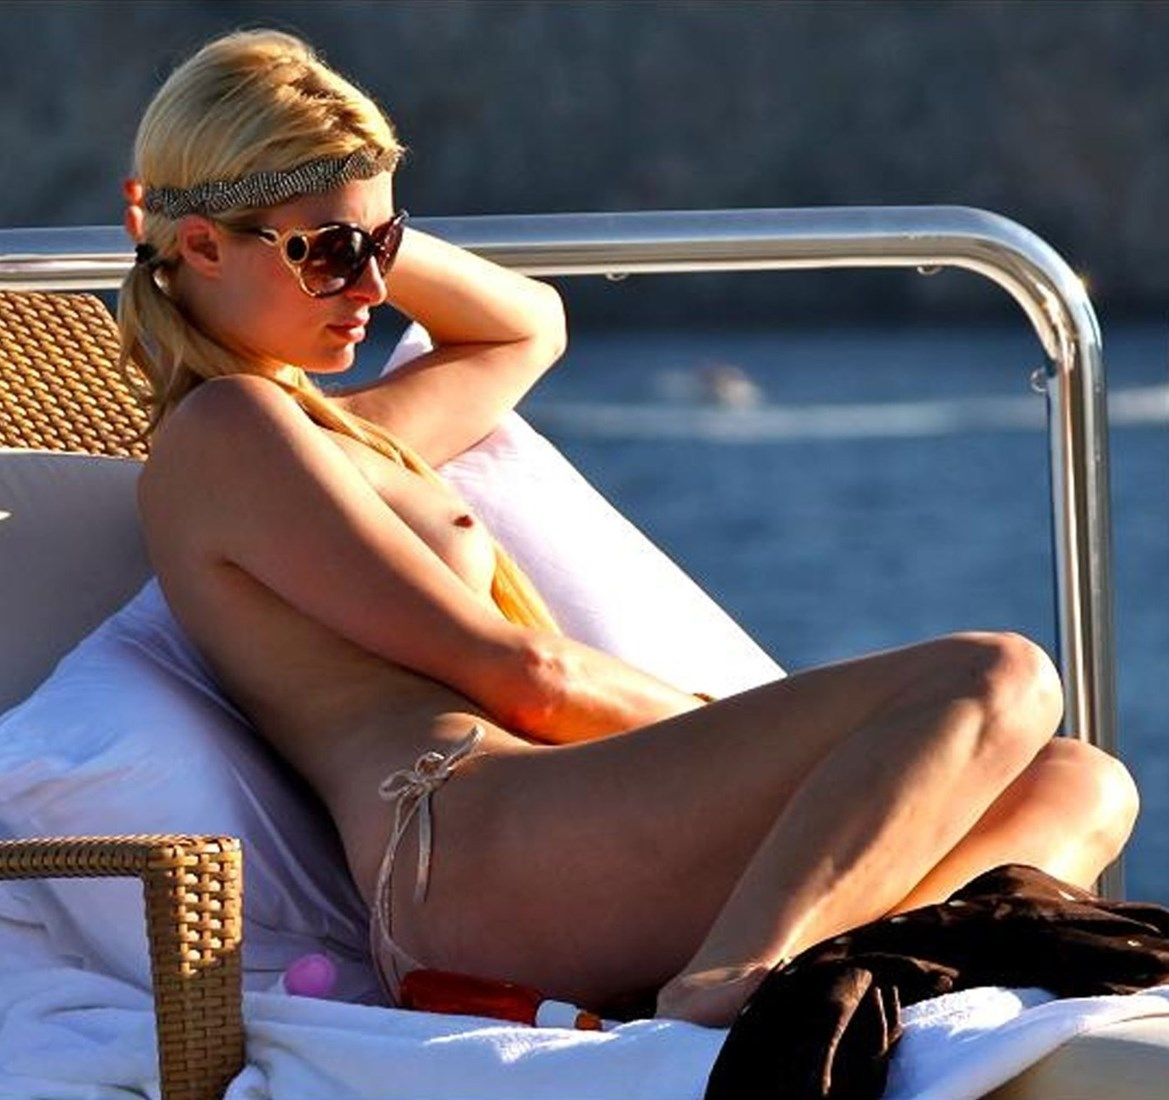 sexy-nude-images-of-paris-hilton-nude-boliwood-photos